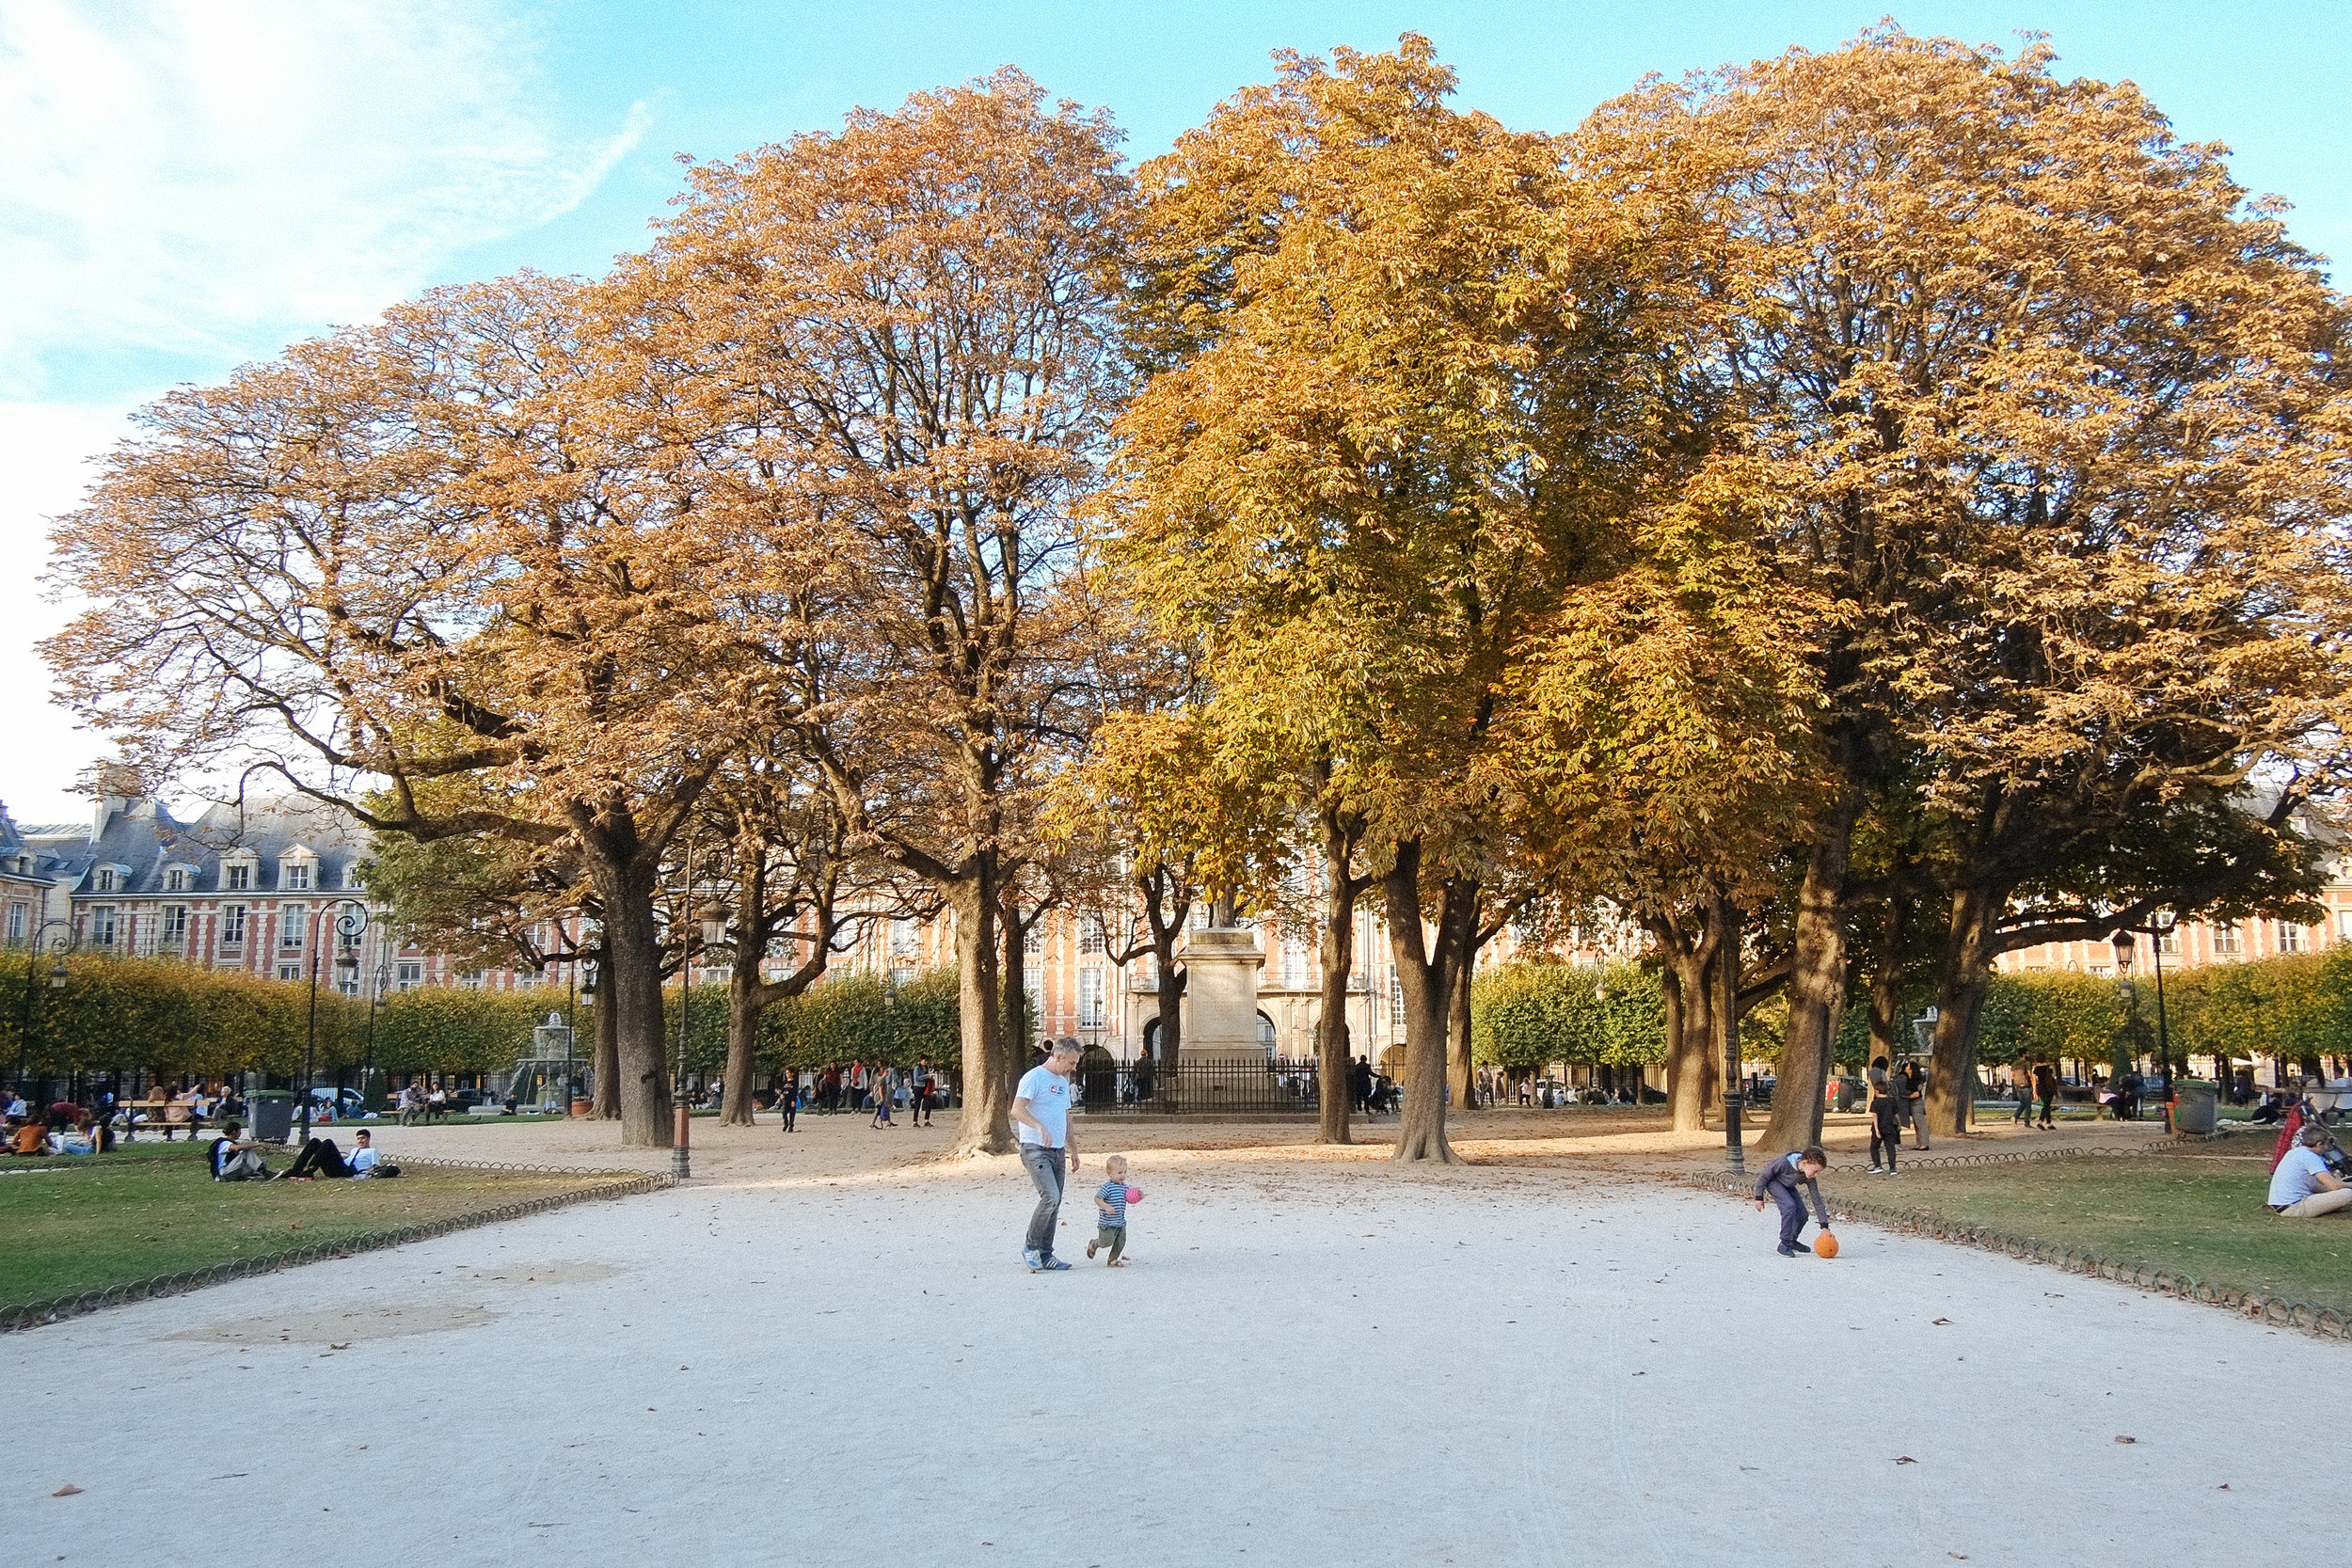 Jardin du Palais Royal, Paris - 2018-10-13: After a quick photo stop at the Louvre Museum - yea we were on a budget ok, we couldn't be bothered to go inside. A stroll in the park seemed fitting right before sundown.